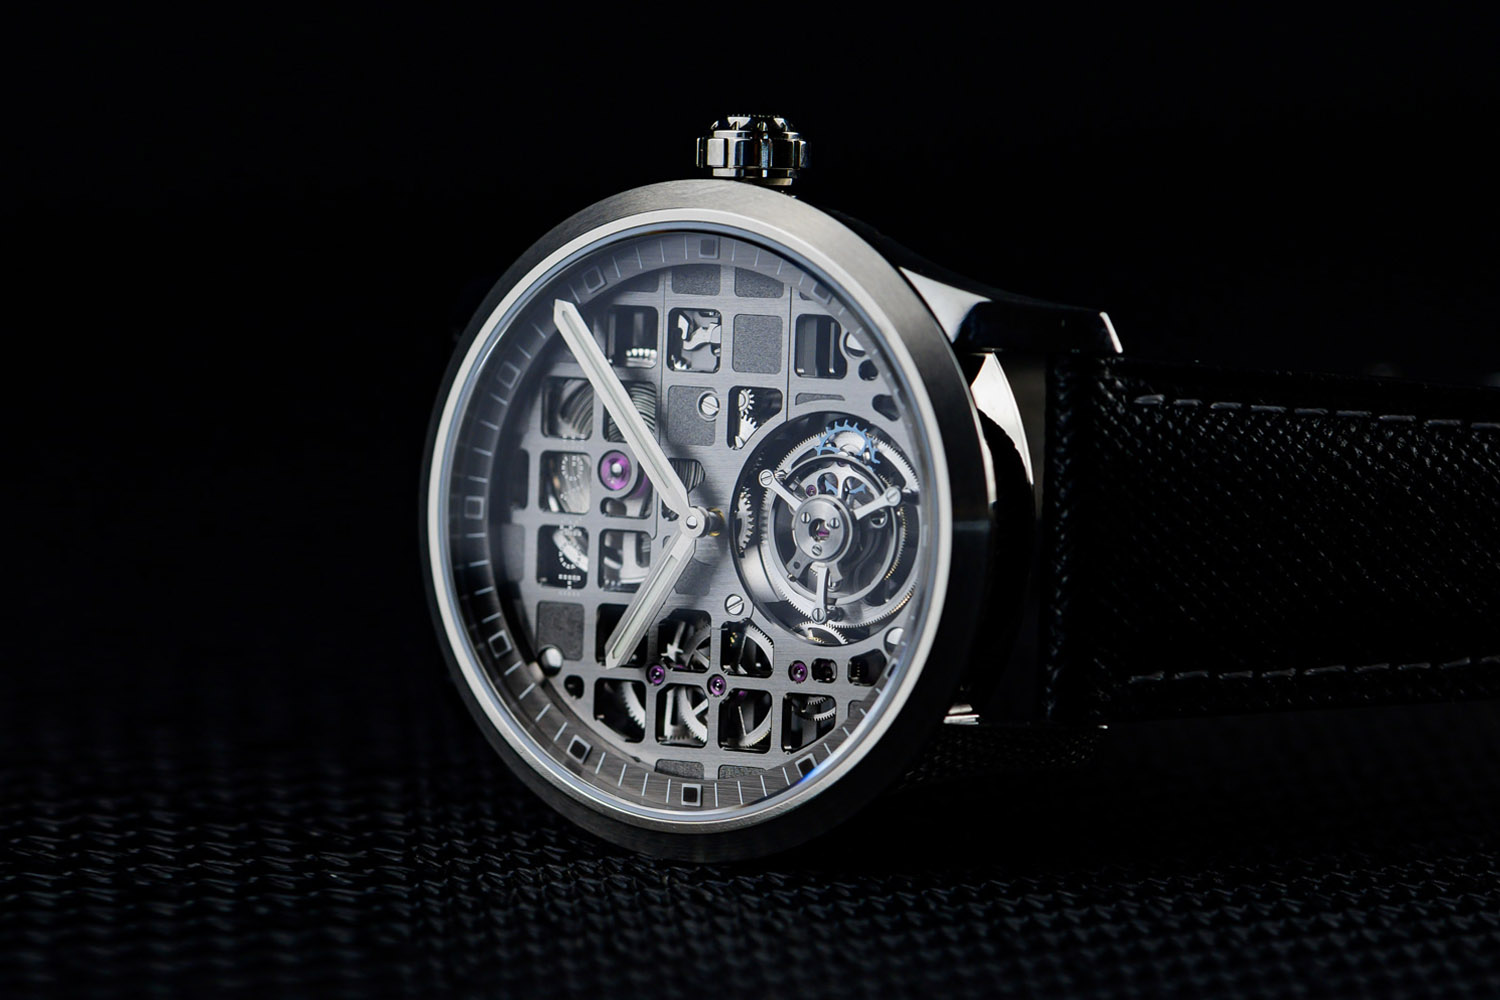 HORAGE Tourbillon 1 - most accessible swiss-made tourbillon